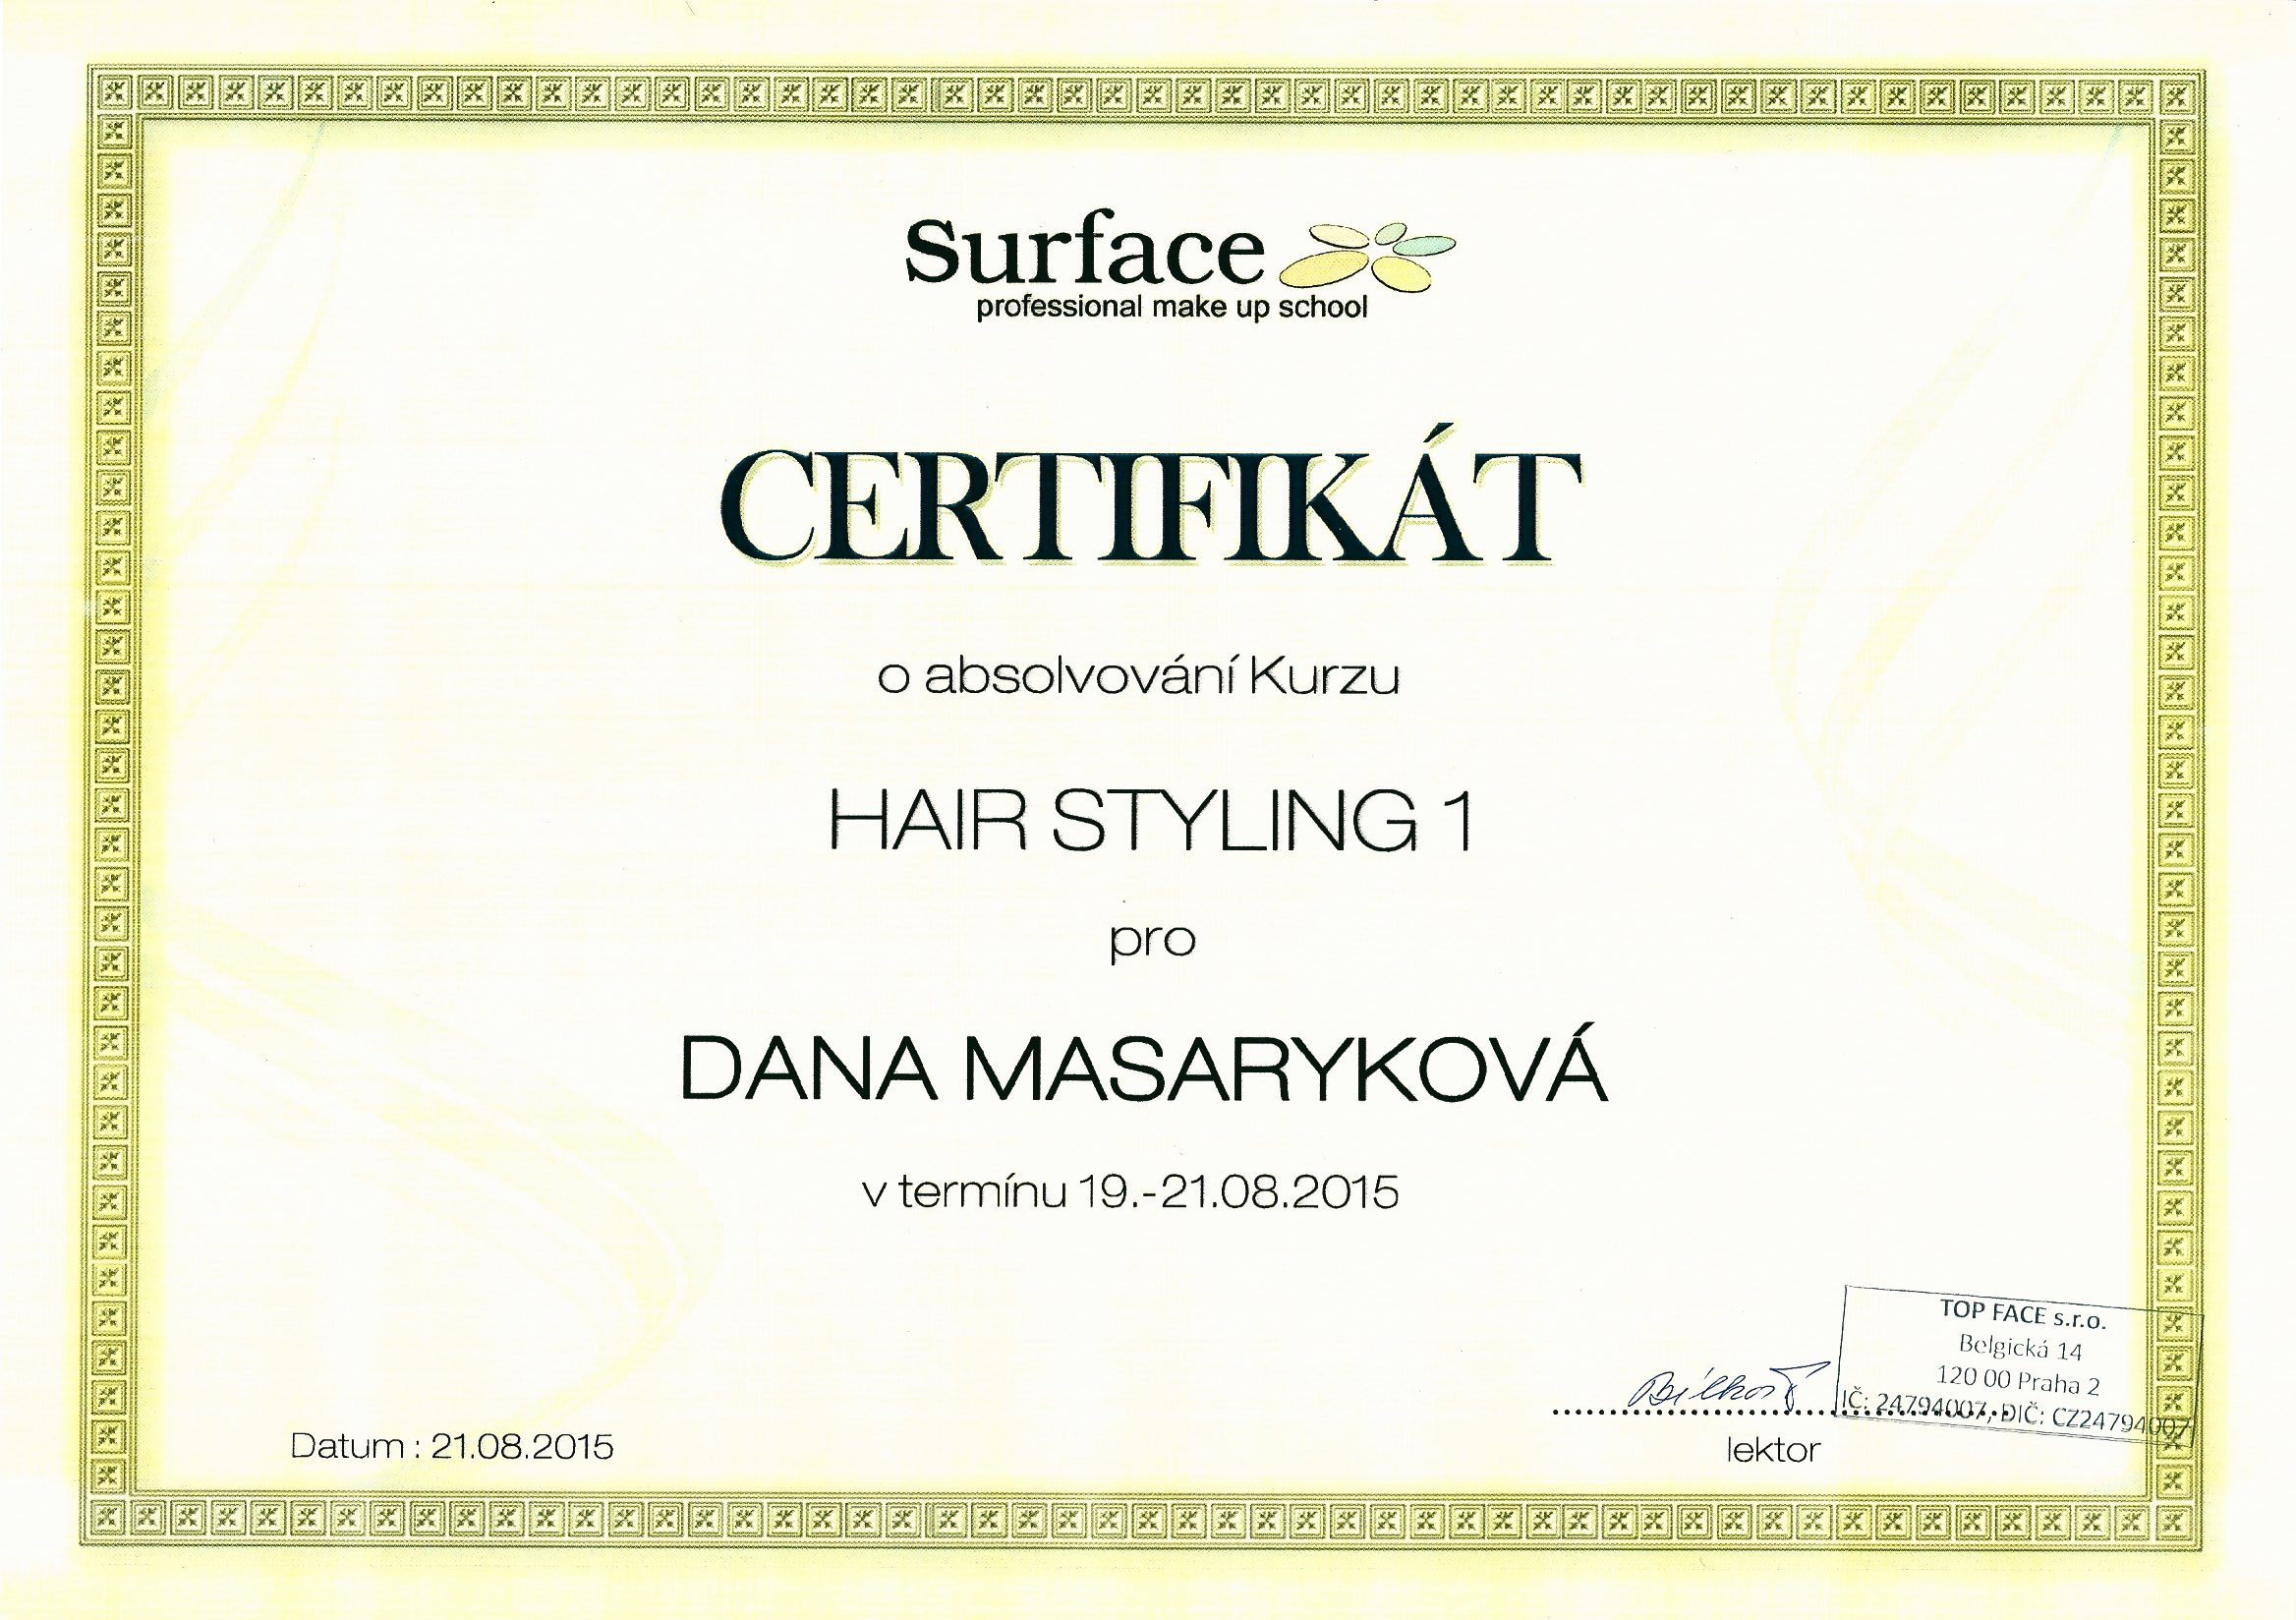 certifikat_hair-styling-1.png